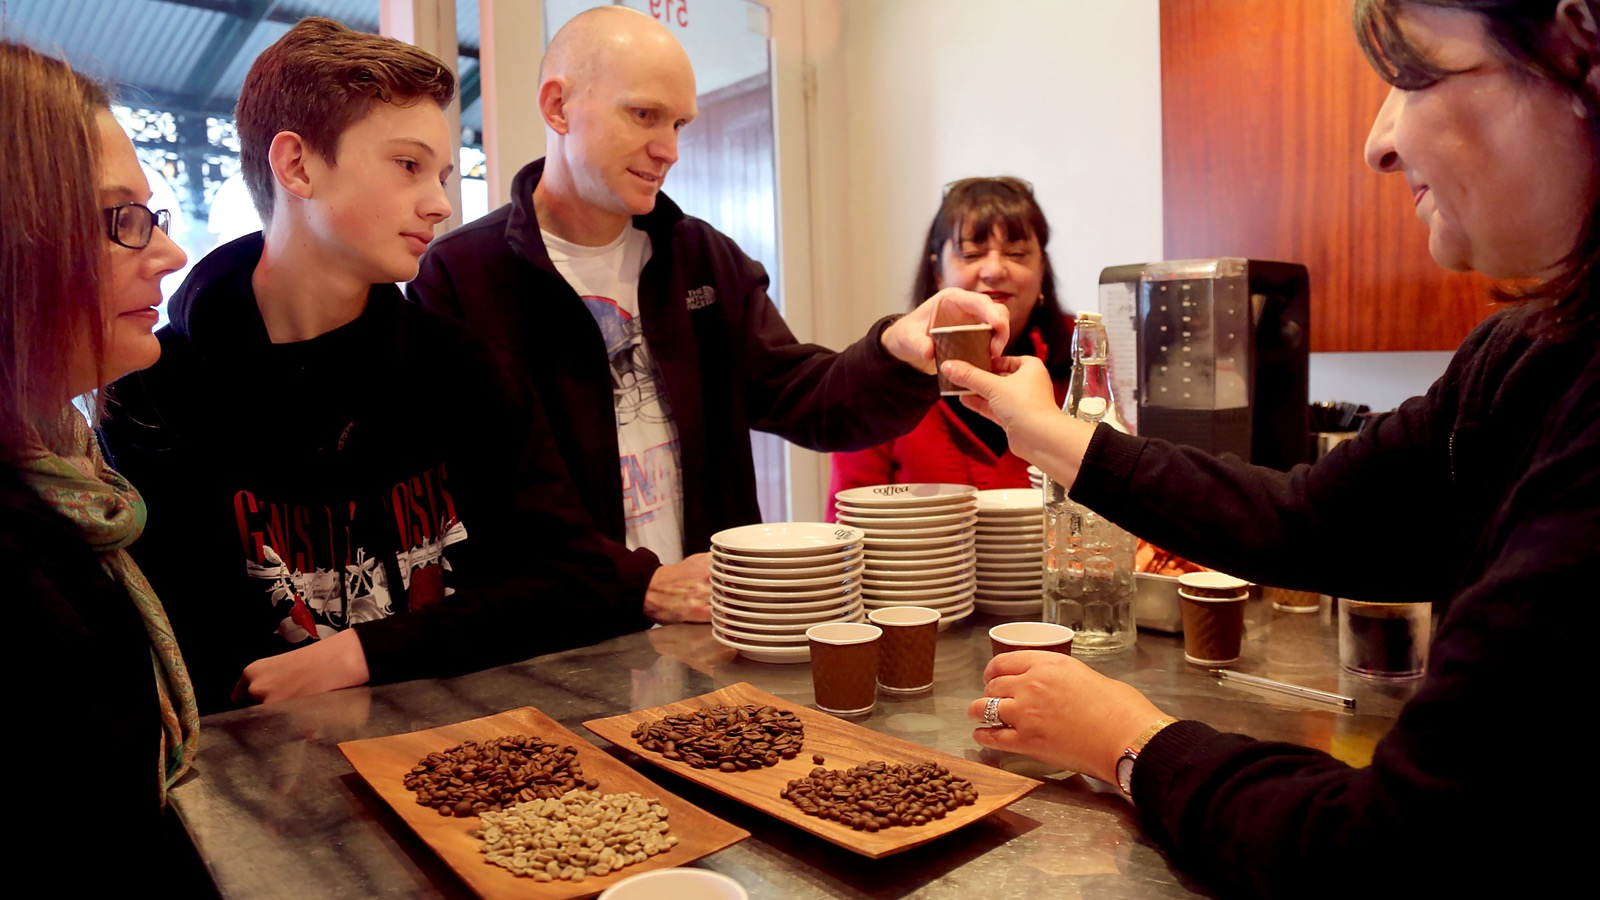 Coffee education on the Gourmet Melbourne Tour